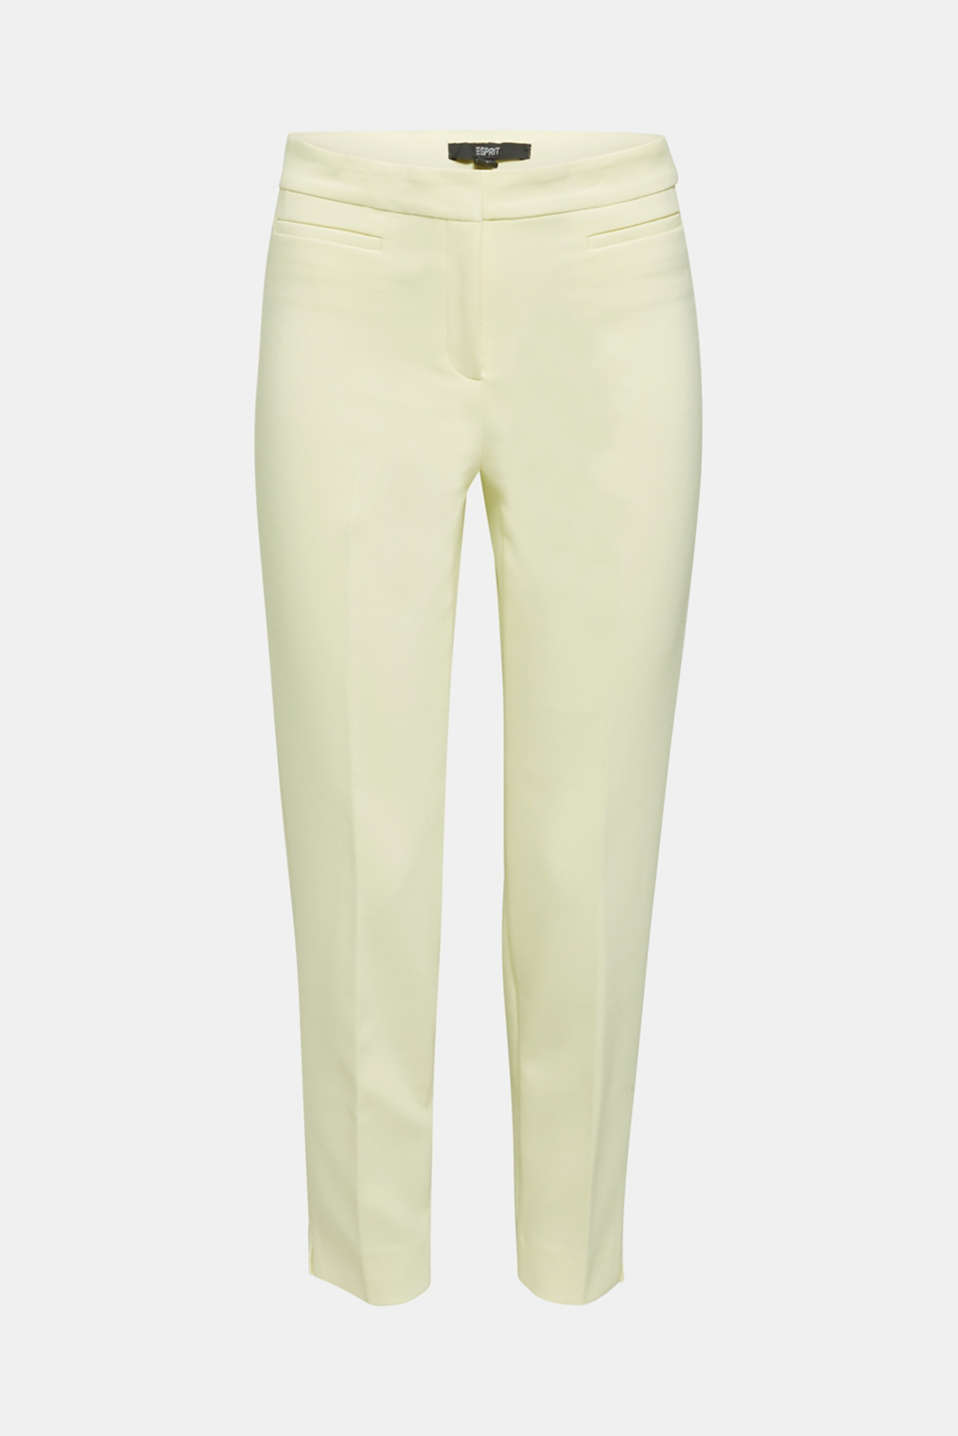 JERSEY mix + match trousers, LIME YELLOW, detail image number 6